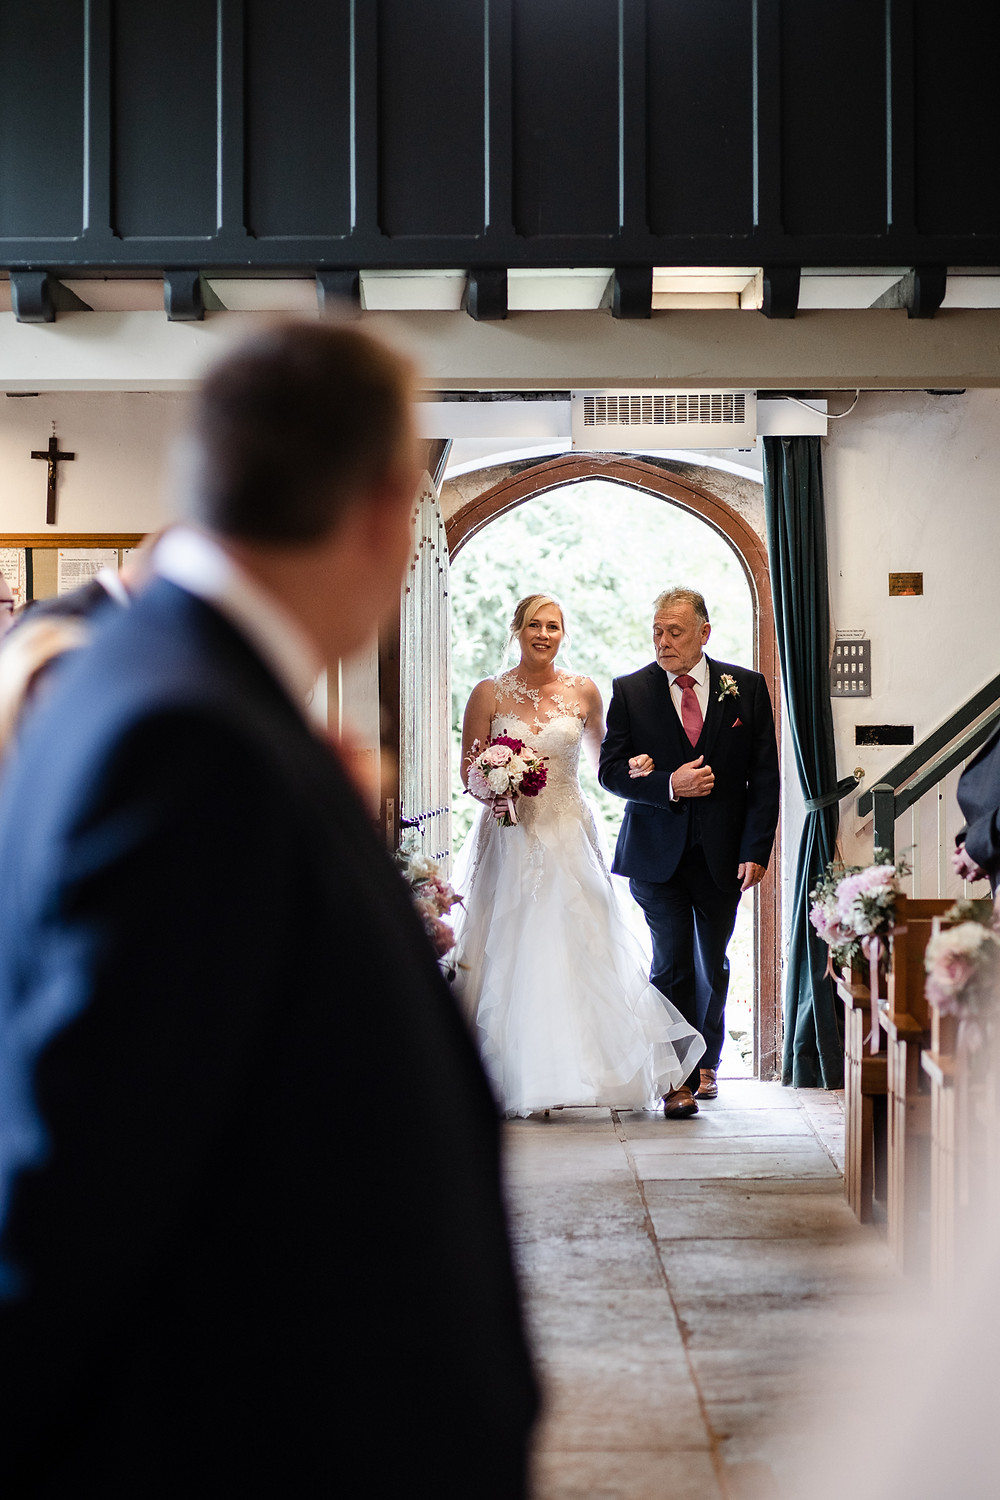 Relaxed & informal wedding photography